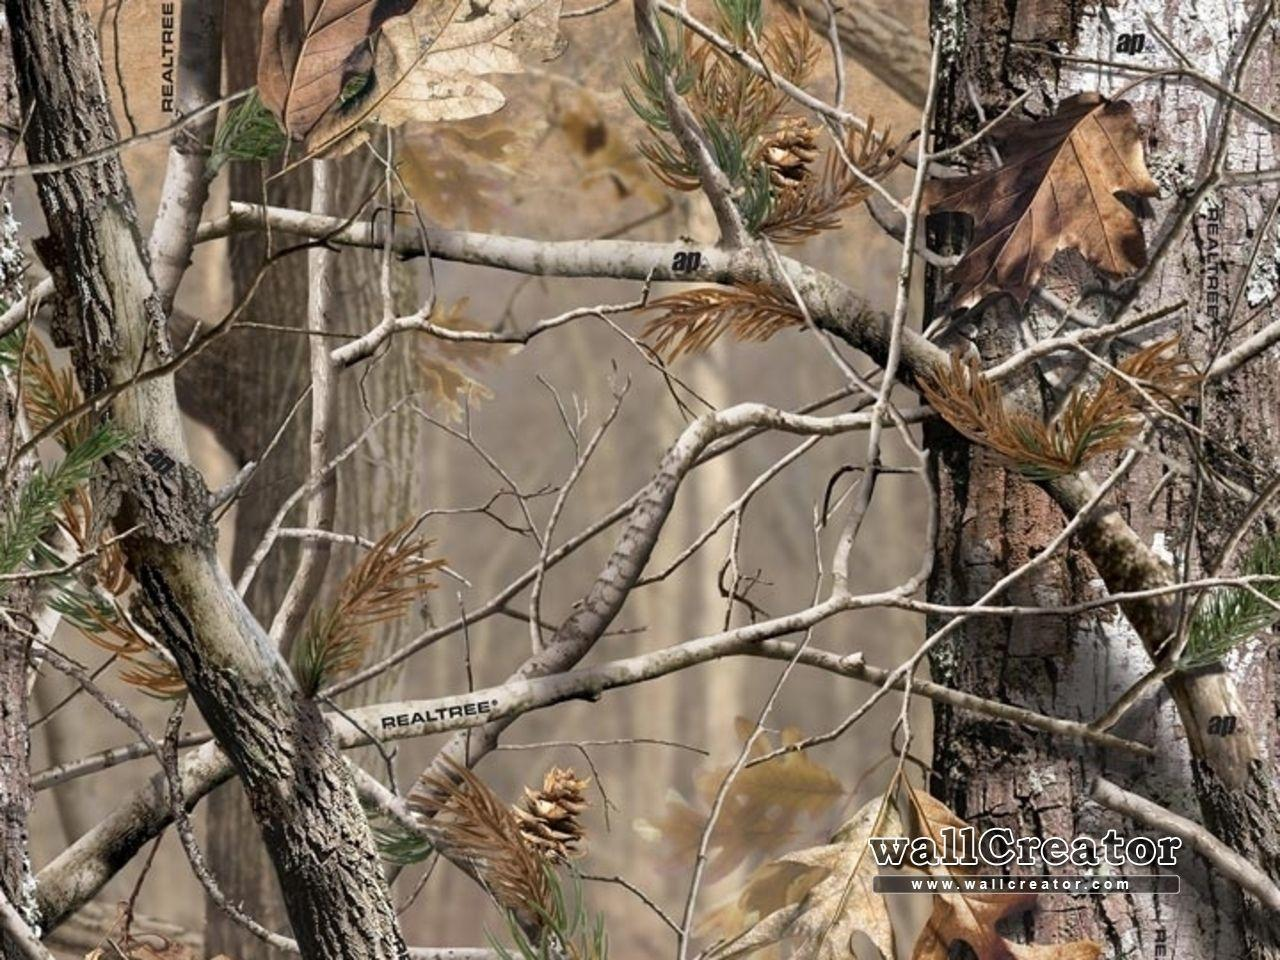 17 Best ideas about Realtree Wallpaper on Pinterest | Realtree ...